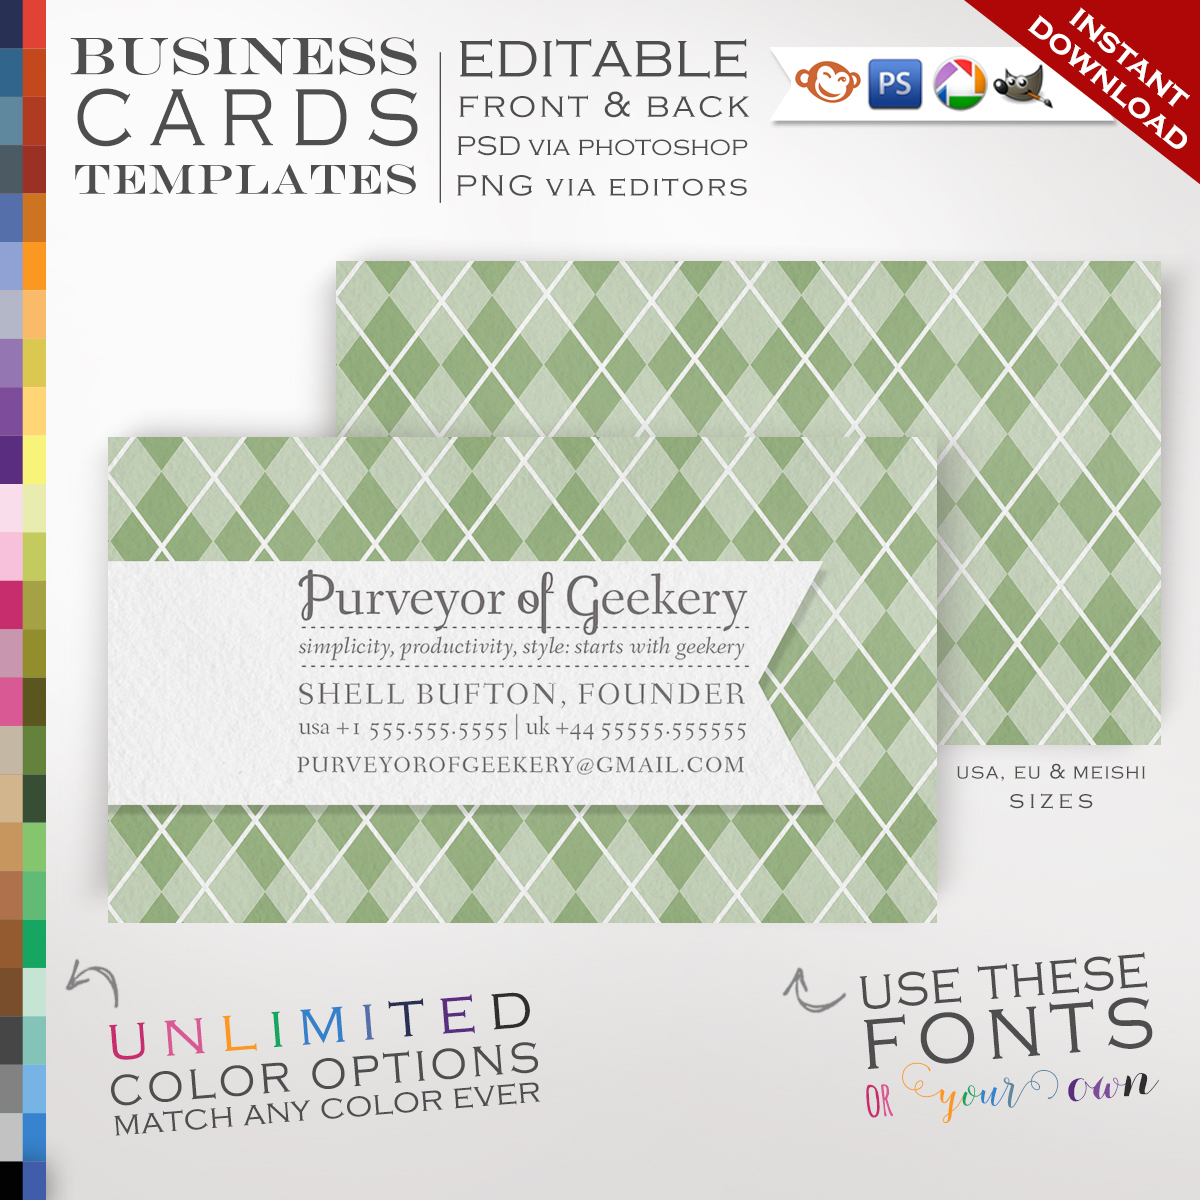 Premade argyle business cards customizable color ribbon design premade argyle business cards customizable color ribbon design double sided rbay photoshop or free editor template faire colourmoves